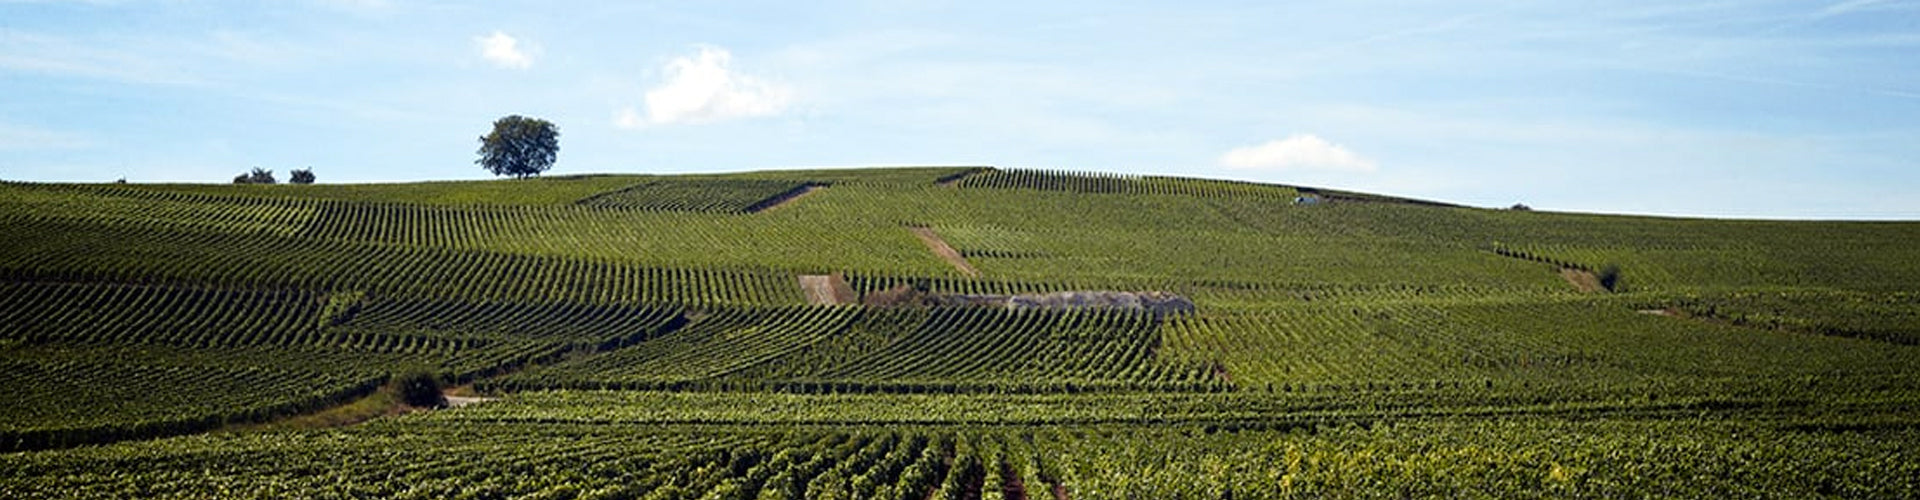 Champagne Piper-Heidsieck Vineyards near Reims